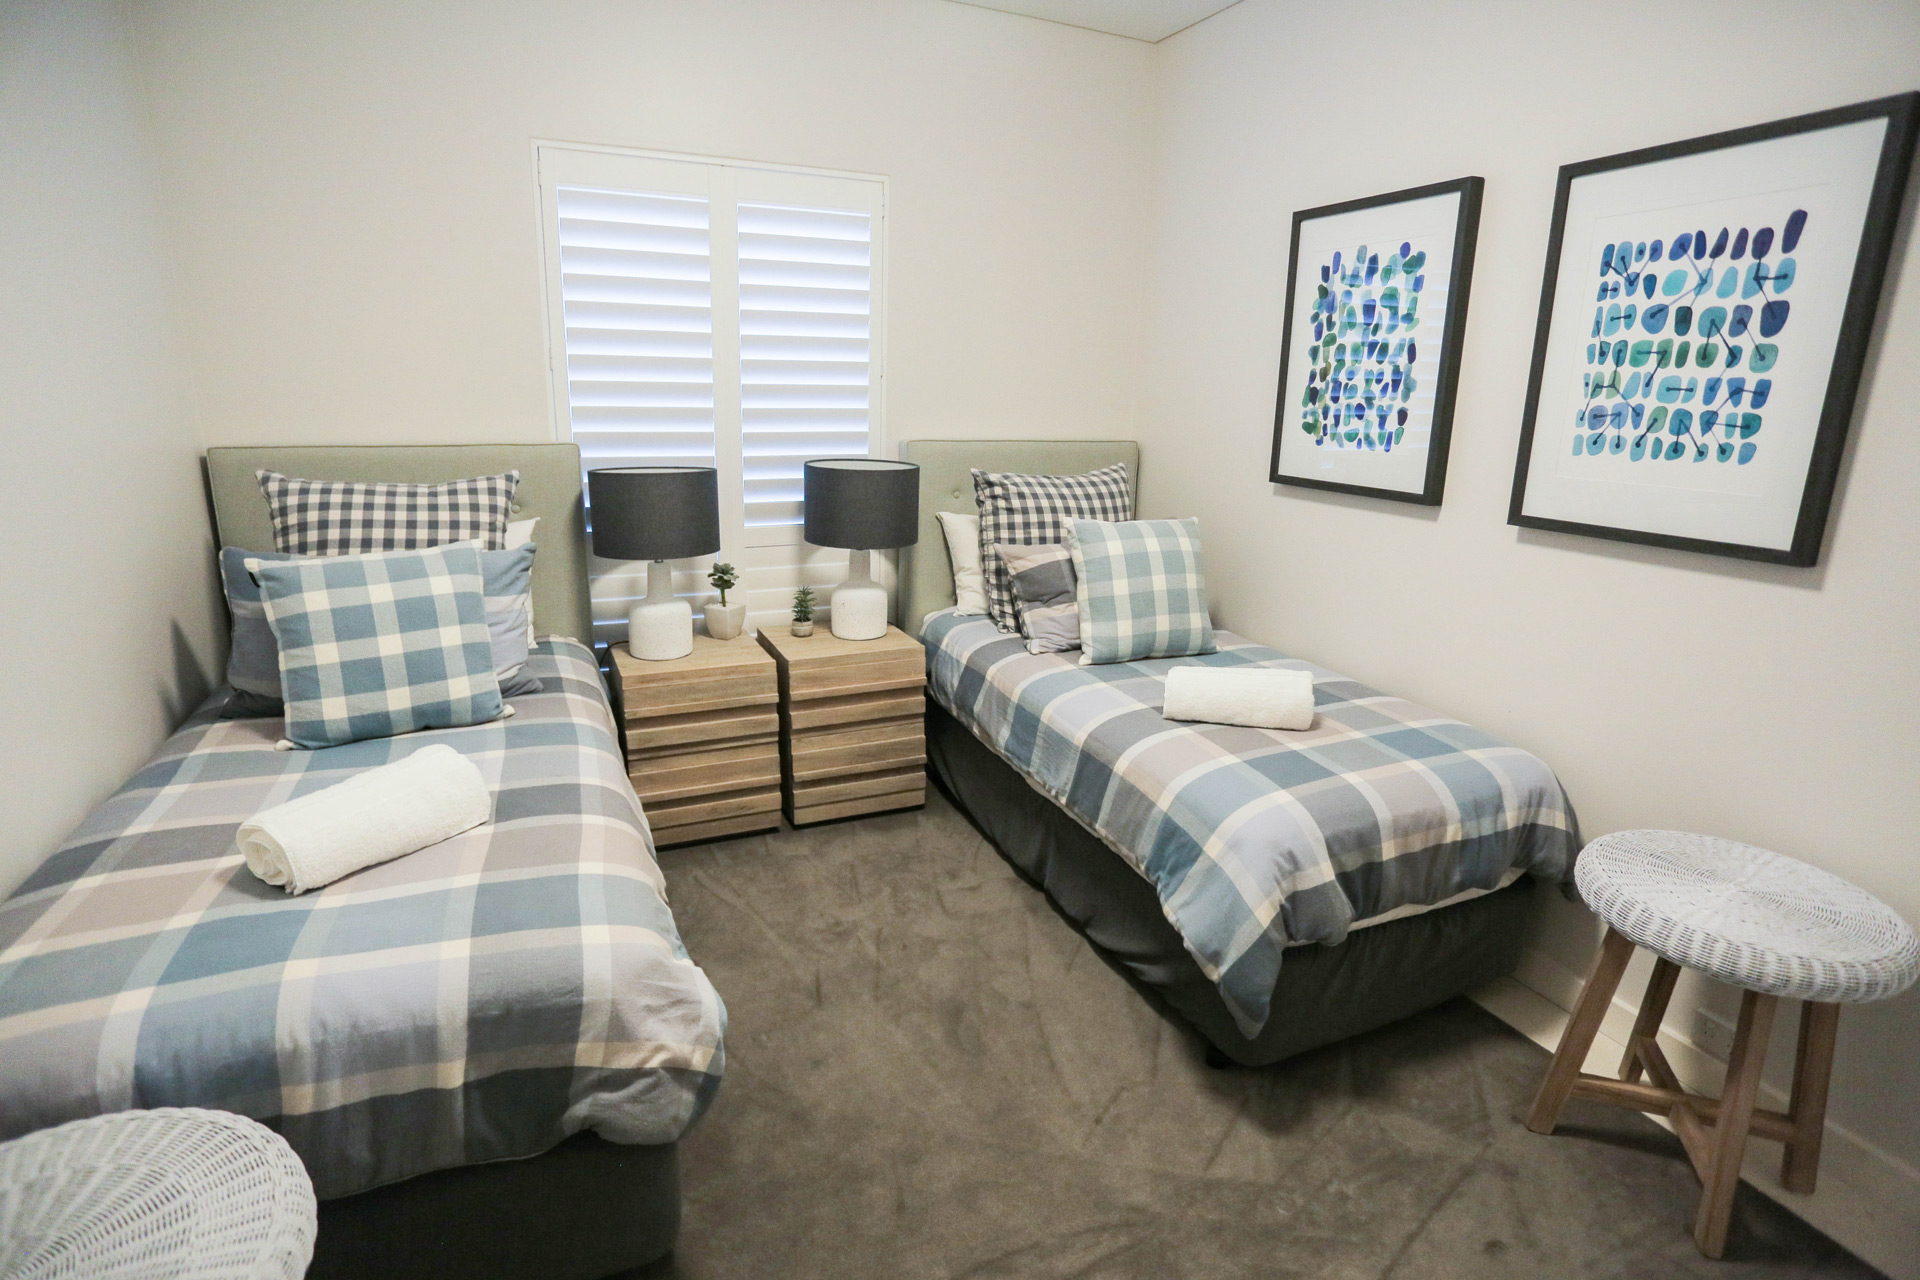 Beach Apartment Styling - Rocksalt Interiors - Residential Interior Designs Central Coast.